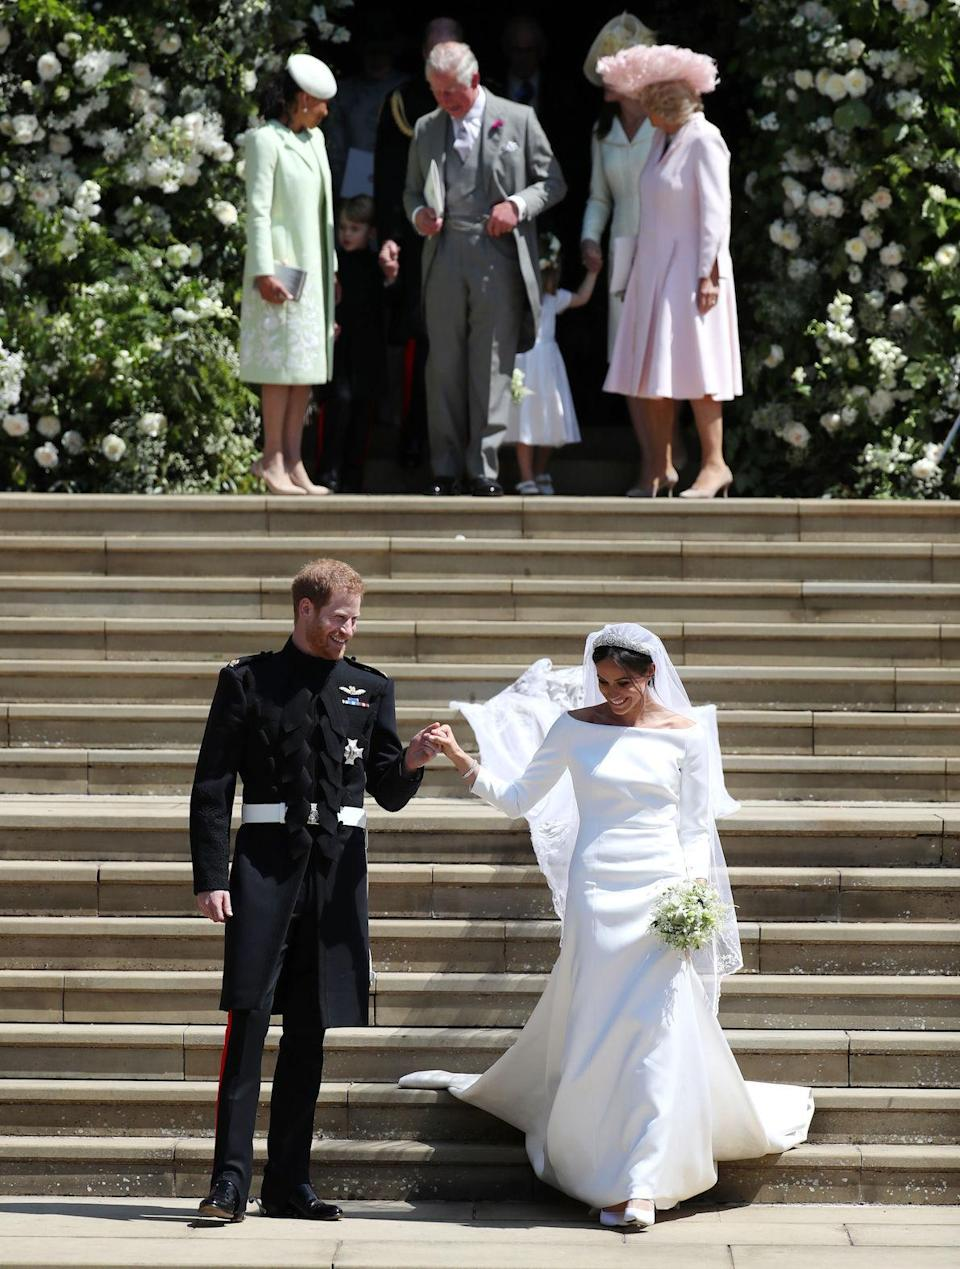 Prince Harry and Meghan Markle followed by (left-right back) Doria Ragland, mother of the bride, the Prince of Wales and the Duchess of Cornwall, after the ceremony. (Getty)